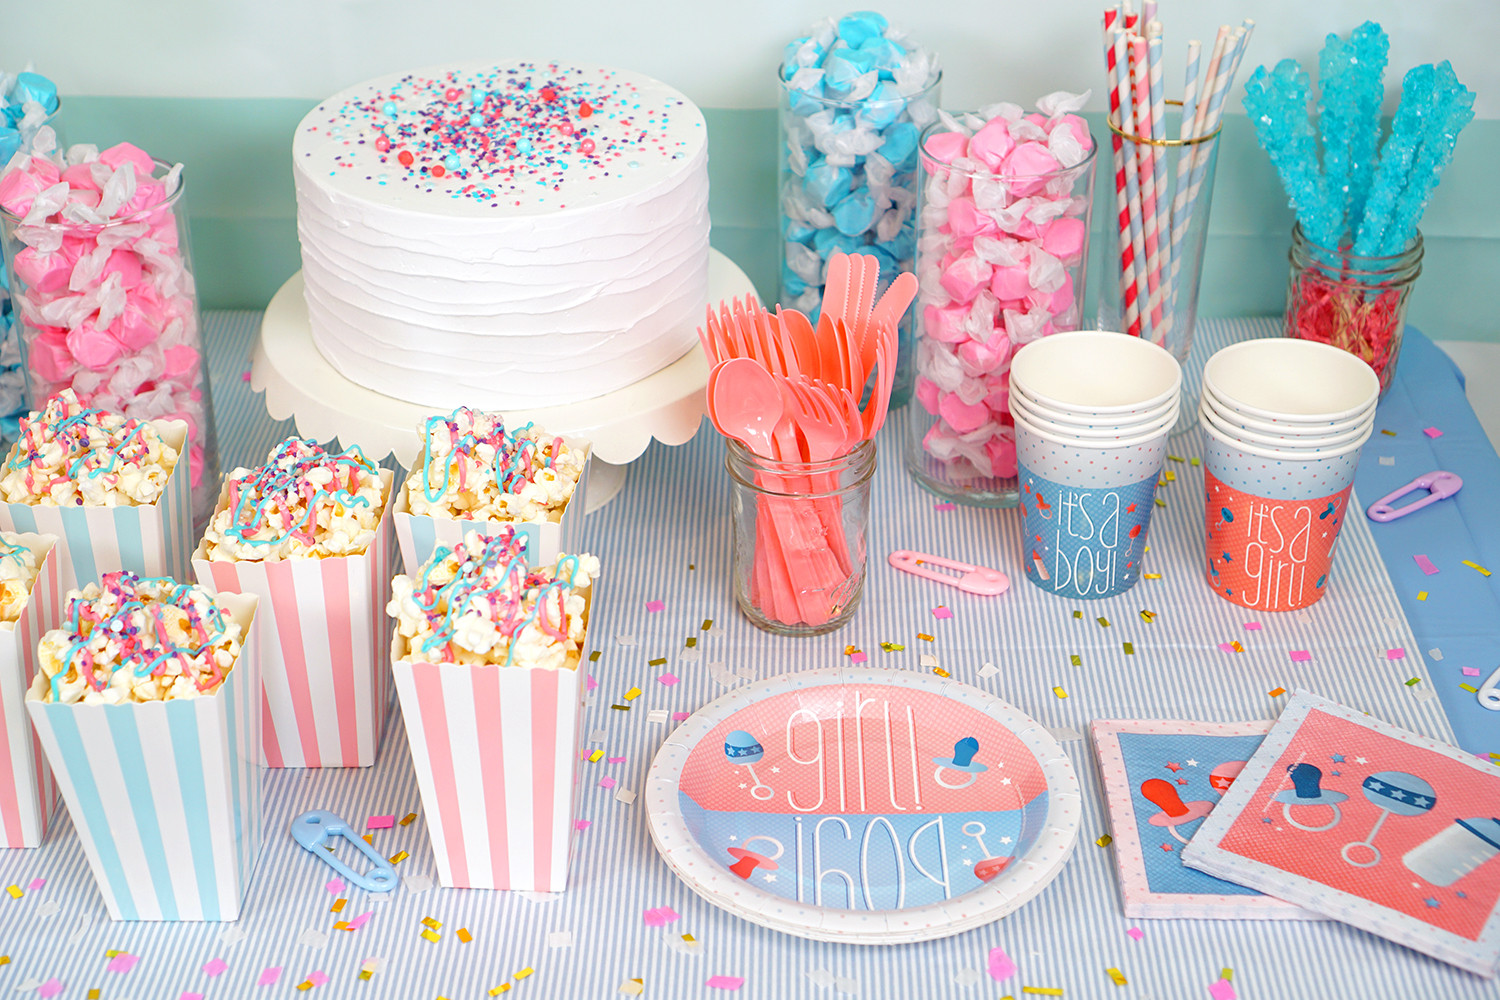 Different Gender Reveal Party Ideas  Gender Reveal Party Ideas Happiness is Homemade